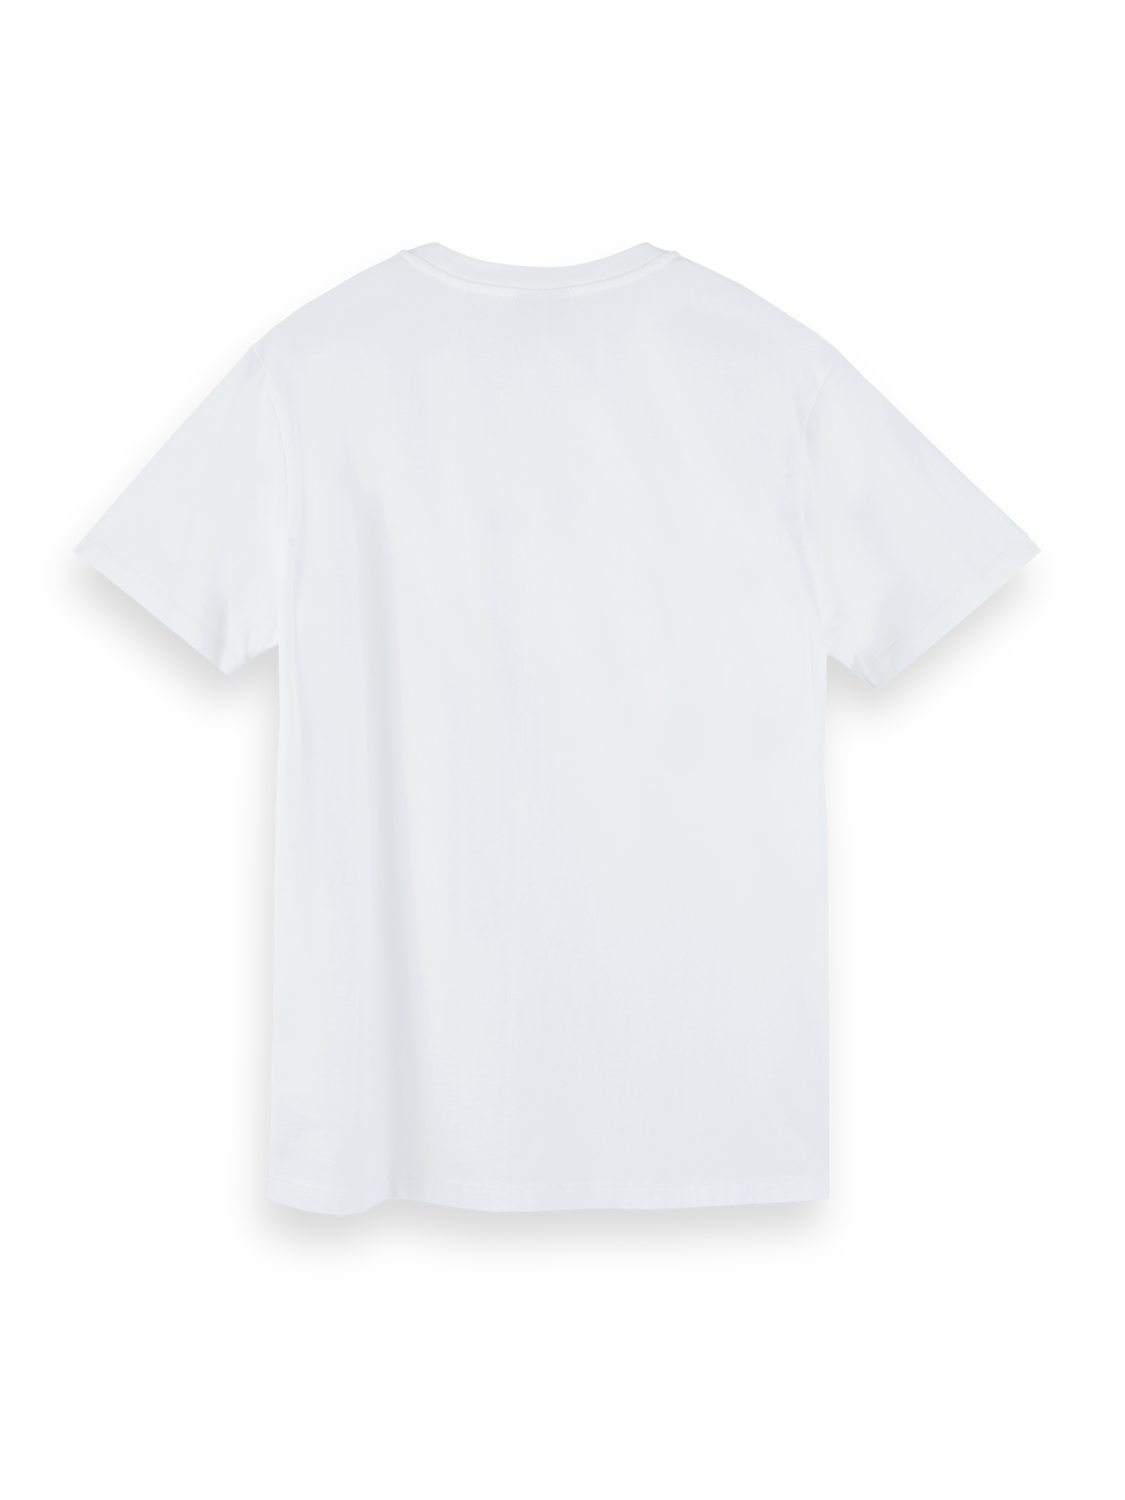 Herrar Organic cotton short sleeve t-shirt